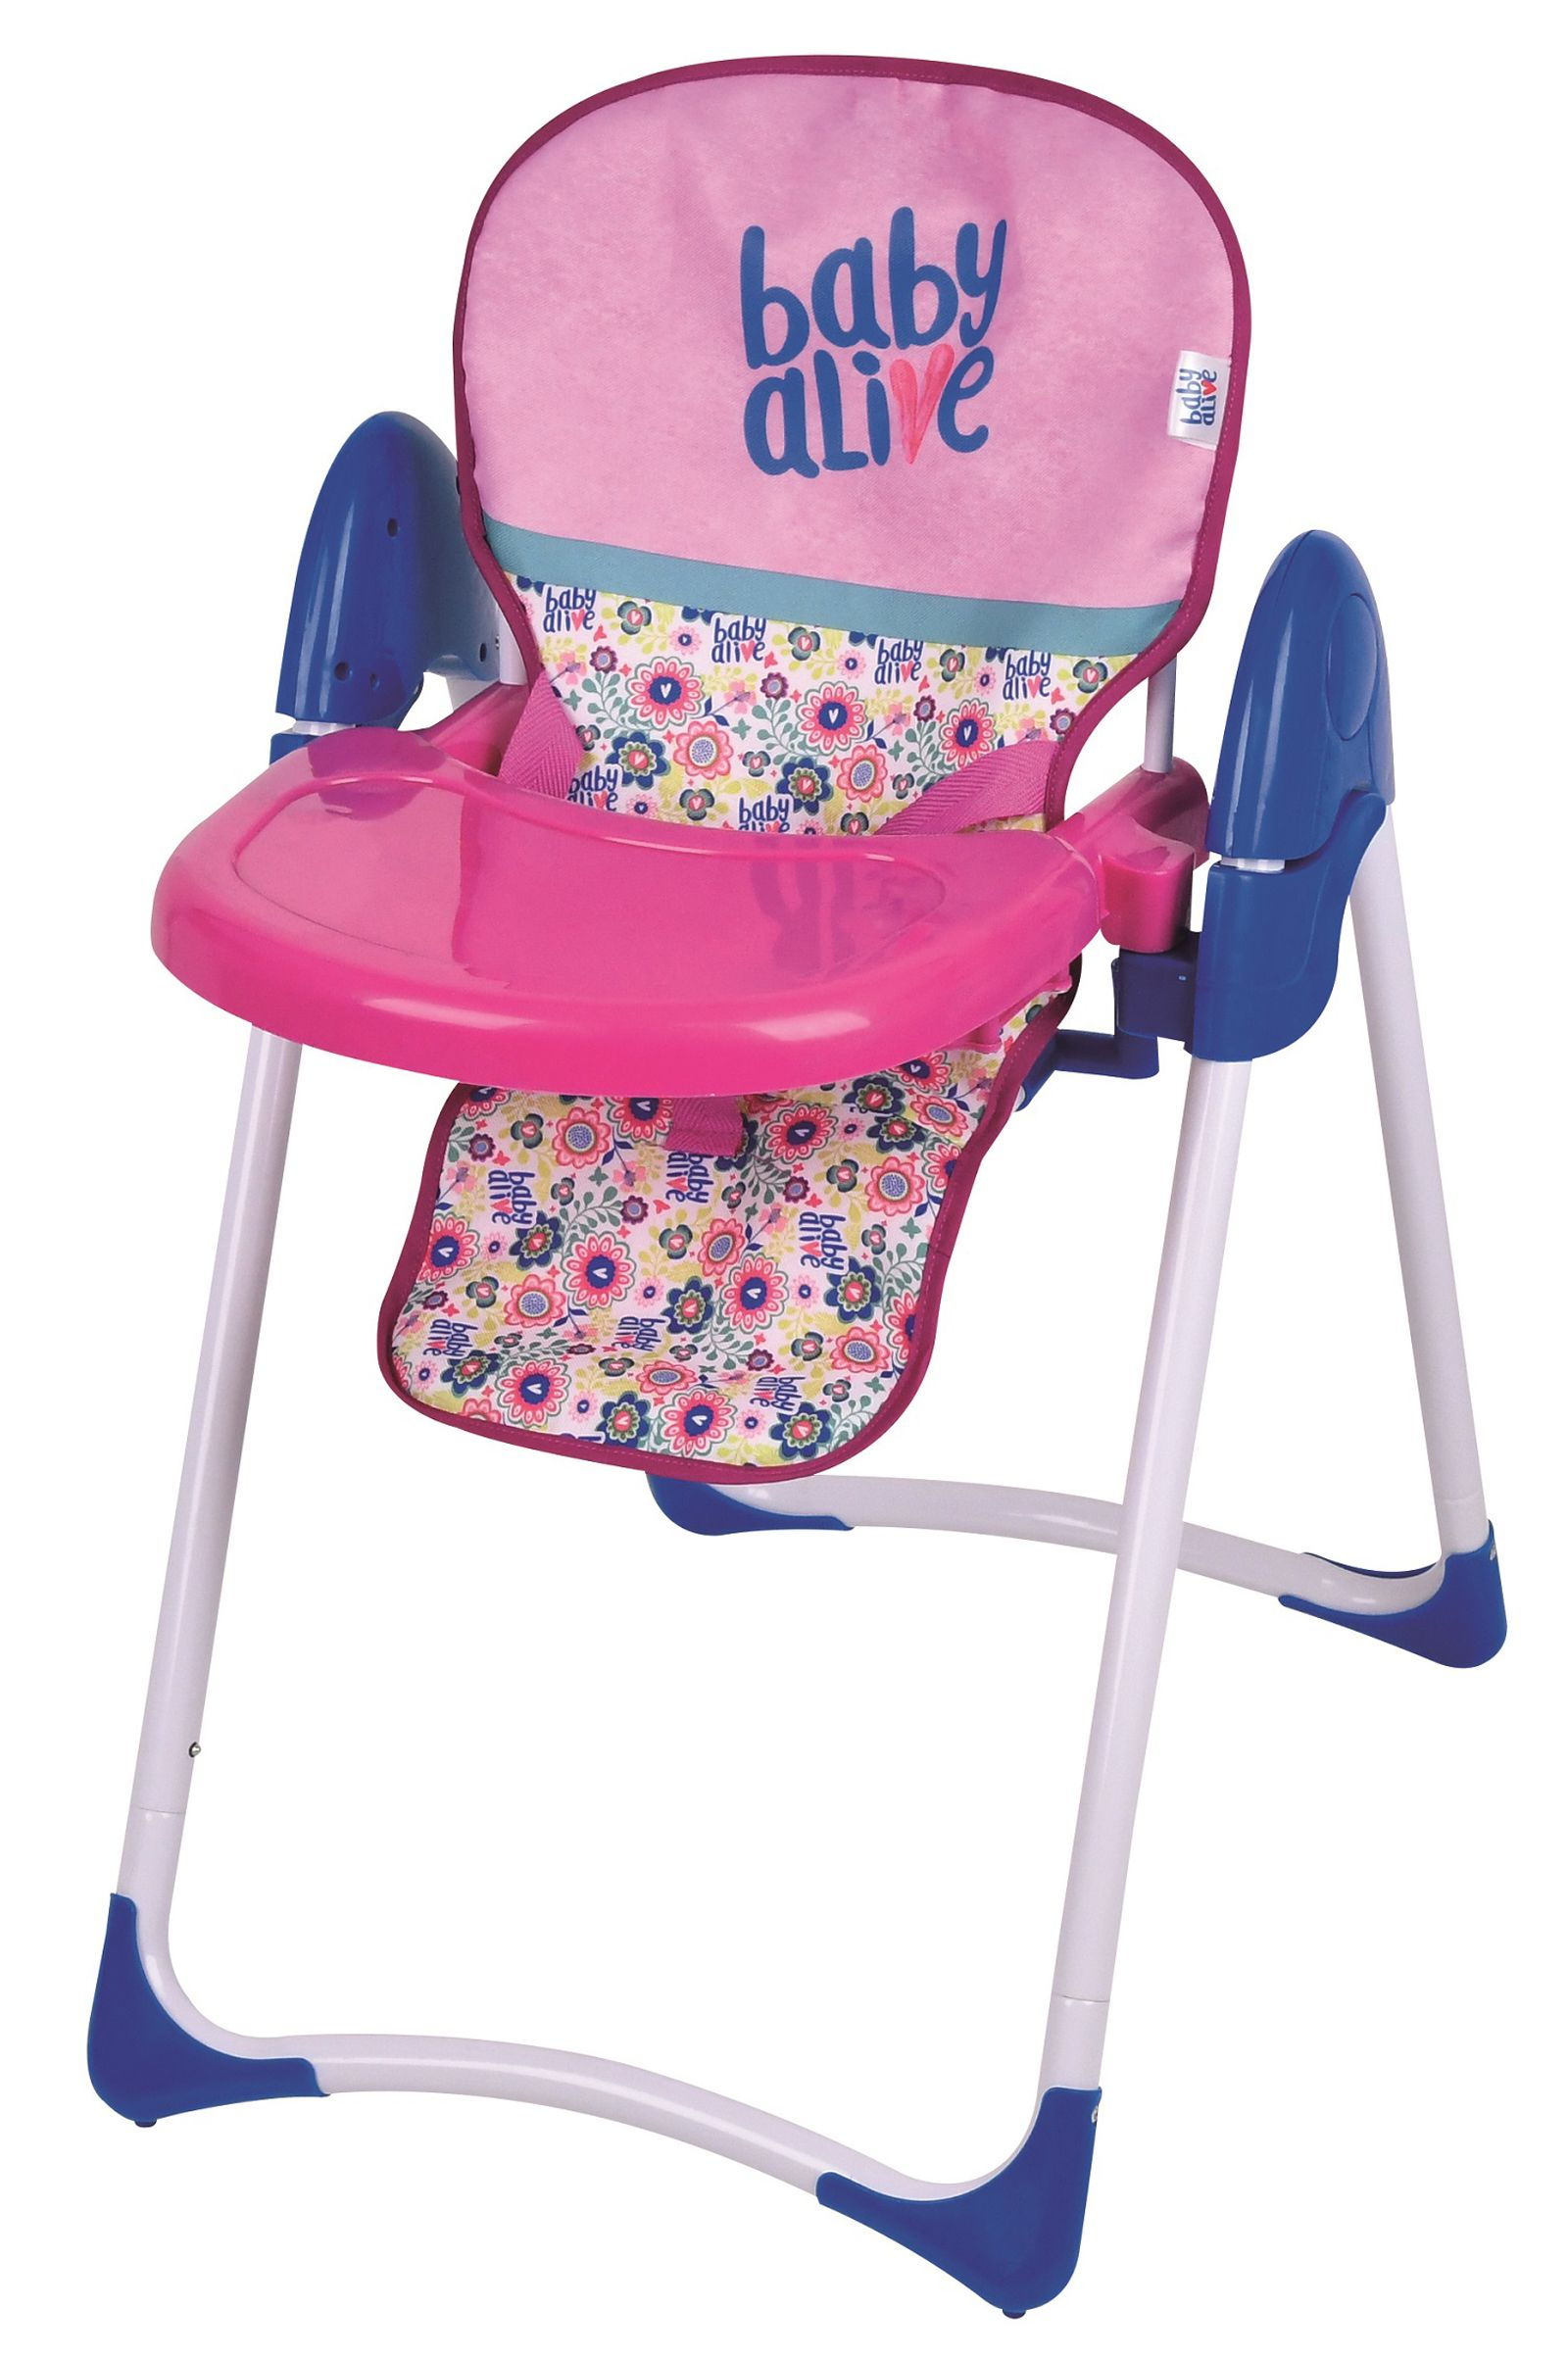 Baby Alive Deluxe Doll Highchair Baby alive dolls, Baby